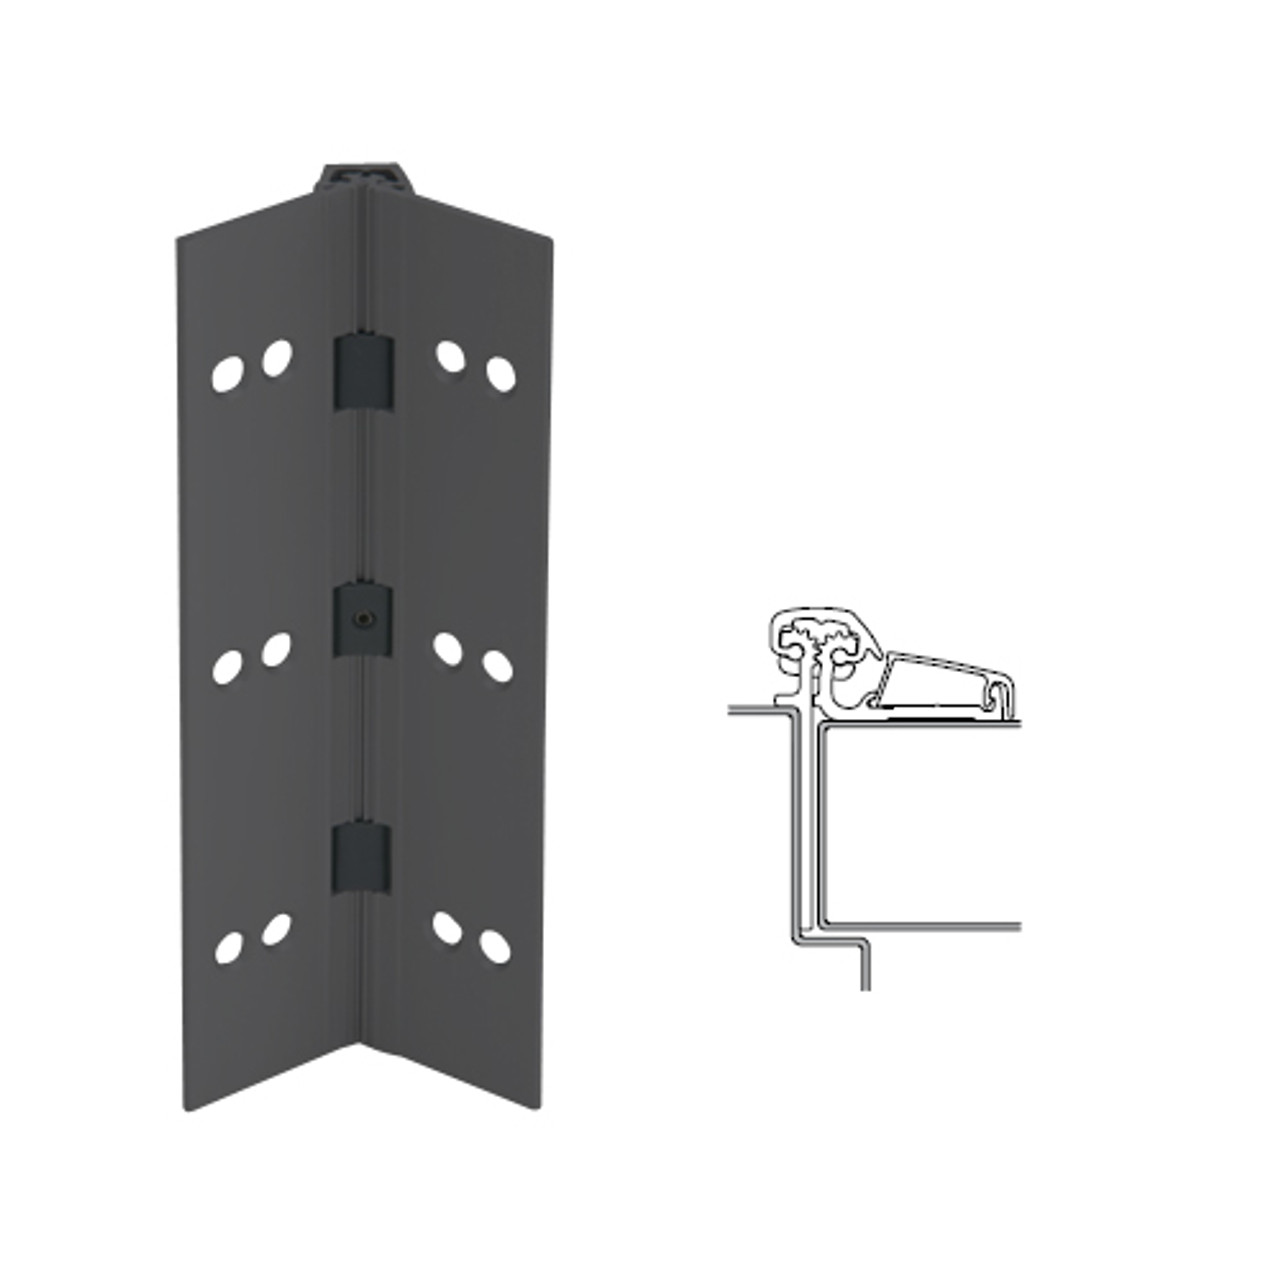 054XY-315AN-95-WD IVES Adjustable Half Surface Continuous Geared Hinges with Wood Screws in Anodized Black